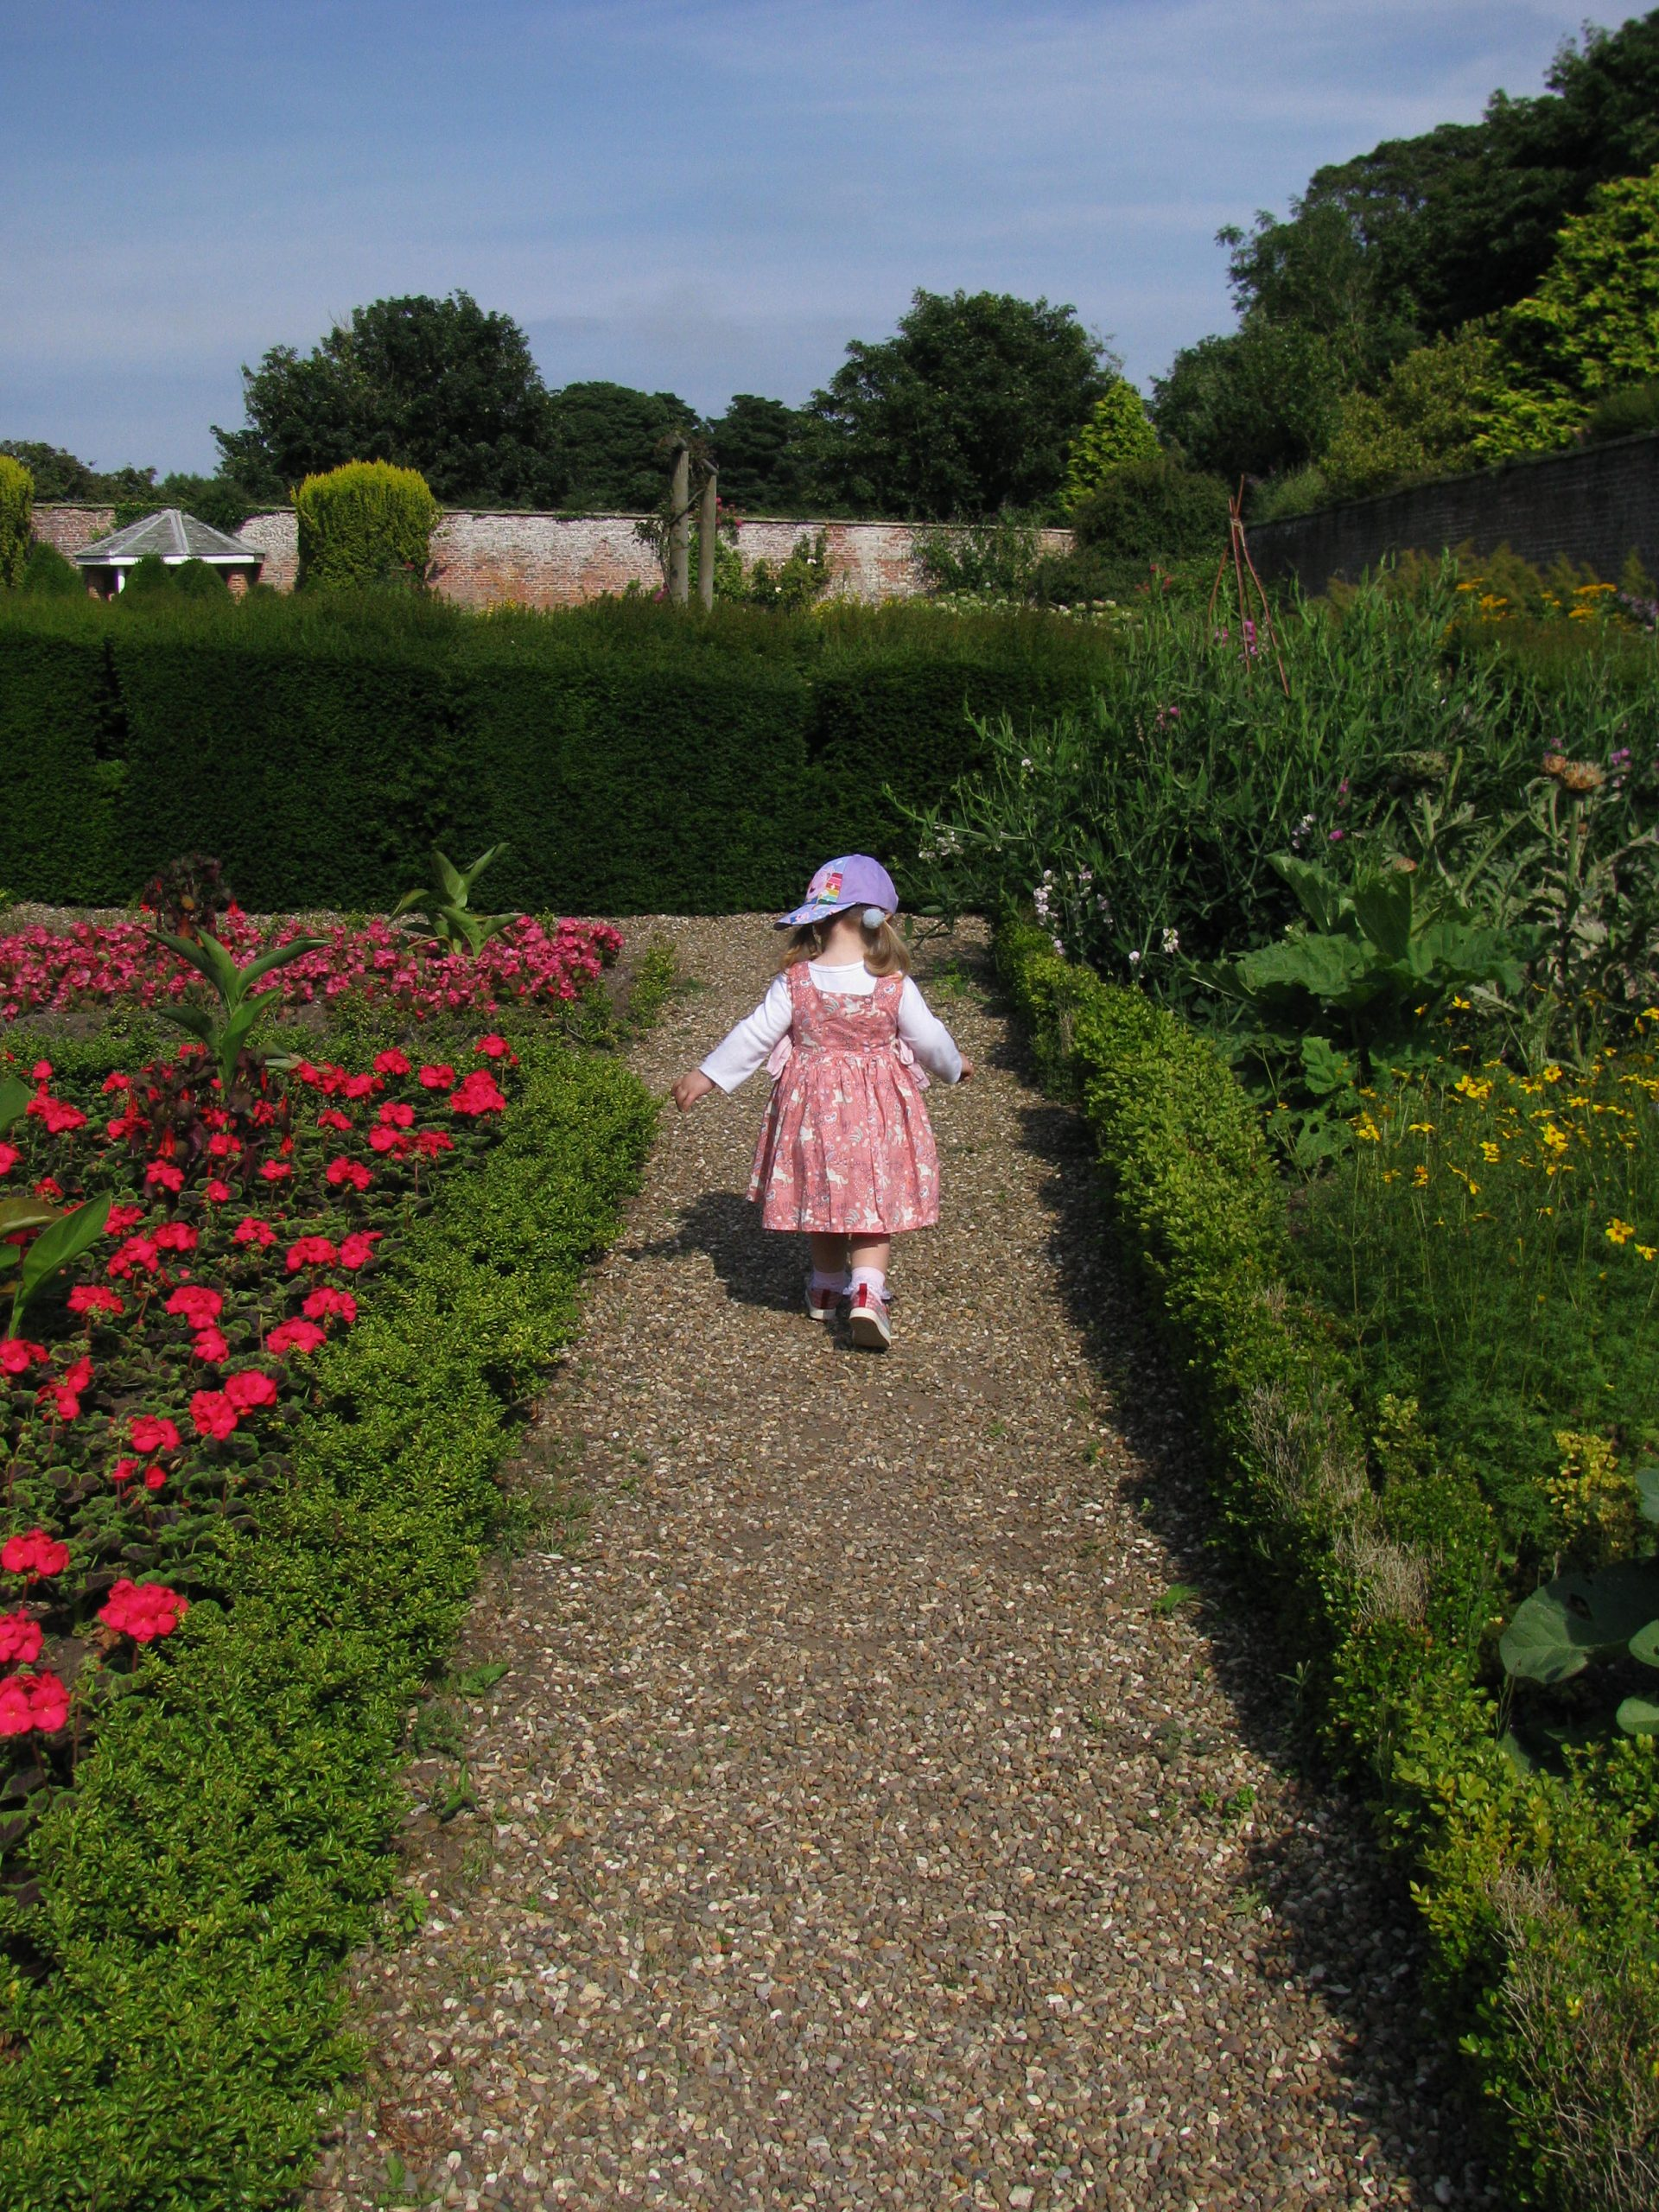 Beautiful Spaces at Sewerby Hall and Gardens